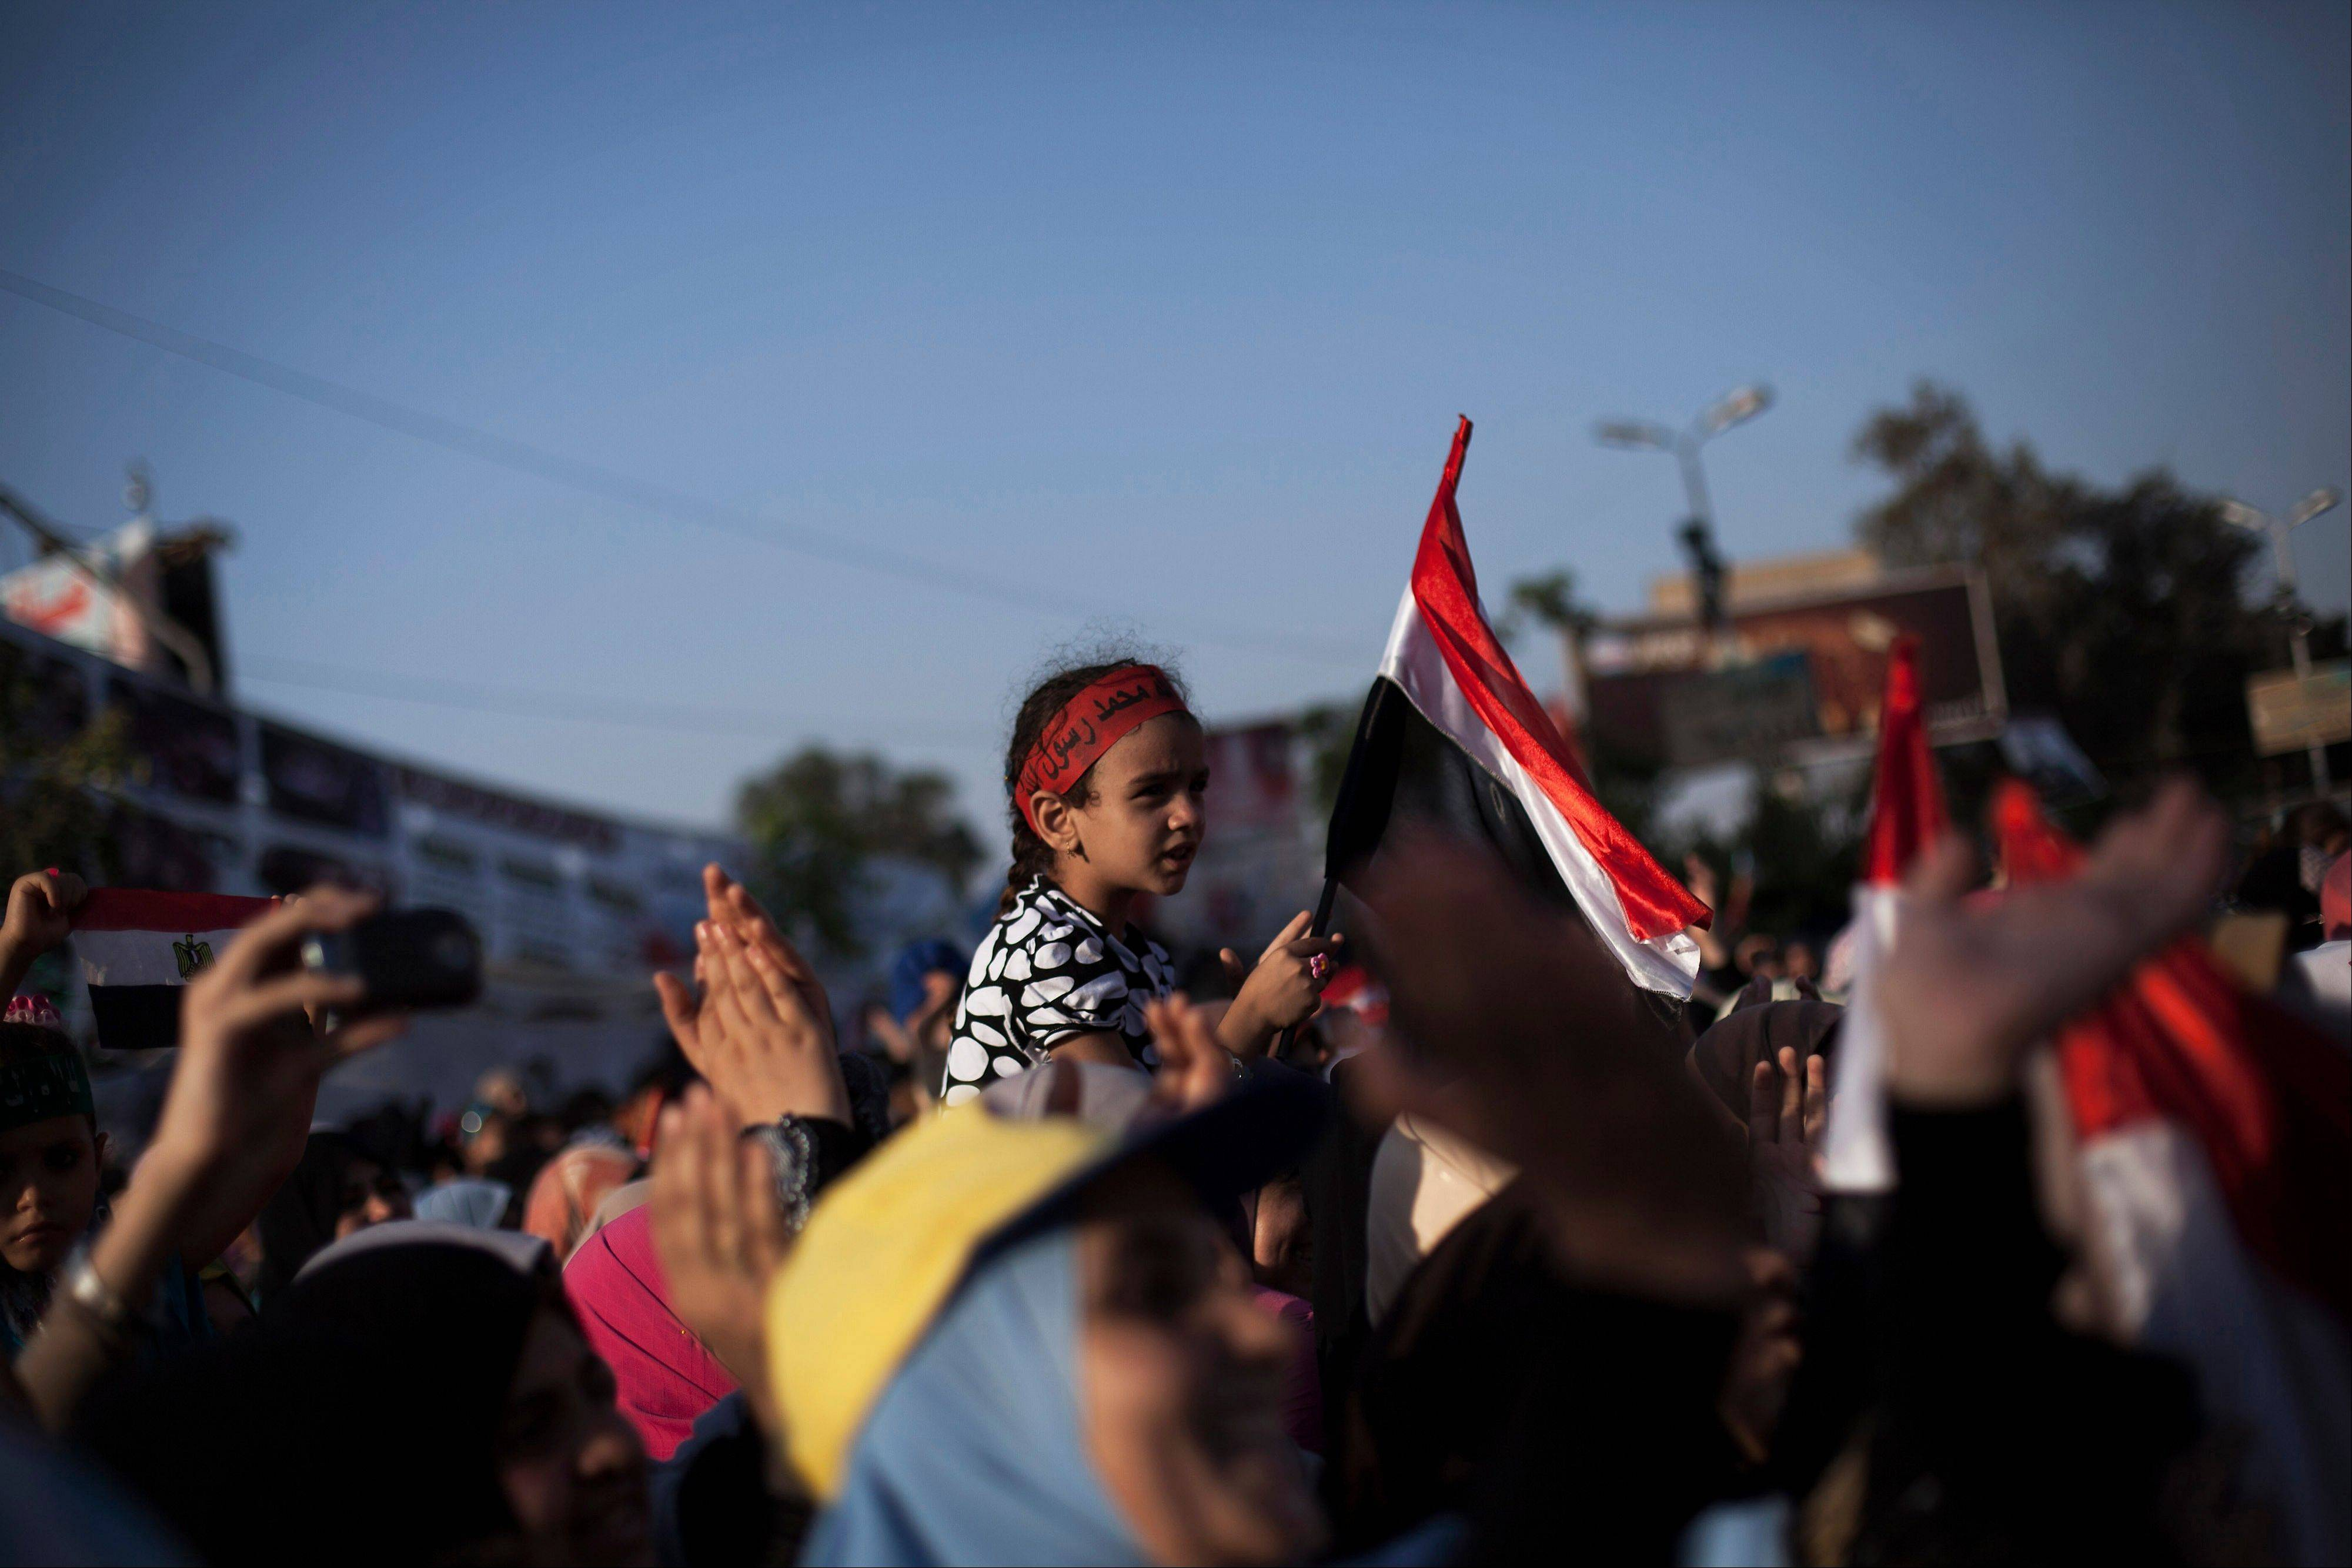 An Egyptian girl waves a national flag while supporters of Egypt�s ousted President Mohammed Morsi chant slogans against the Egyptian Army at the sit-in at Rabaah al-Adawiya mosque, which is fortified with multiple walls of bricks, tires, metal barricades and sandbags, and where protesters have installed their camp in Nasr City, Cairo, Egypt, Sunday, Aug. 11, 2013. Egyptian security forces will besiege two sit-ins by supporters of the country�s ousted president within 24 hours, police officials said Sunday, setting up a possible confrontation between the military-backed government and the thousands gathered there.